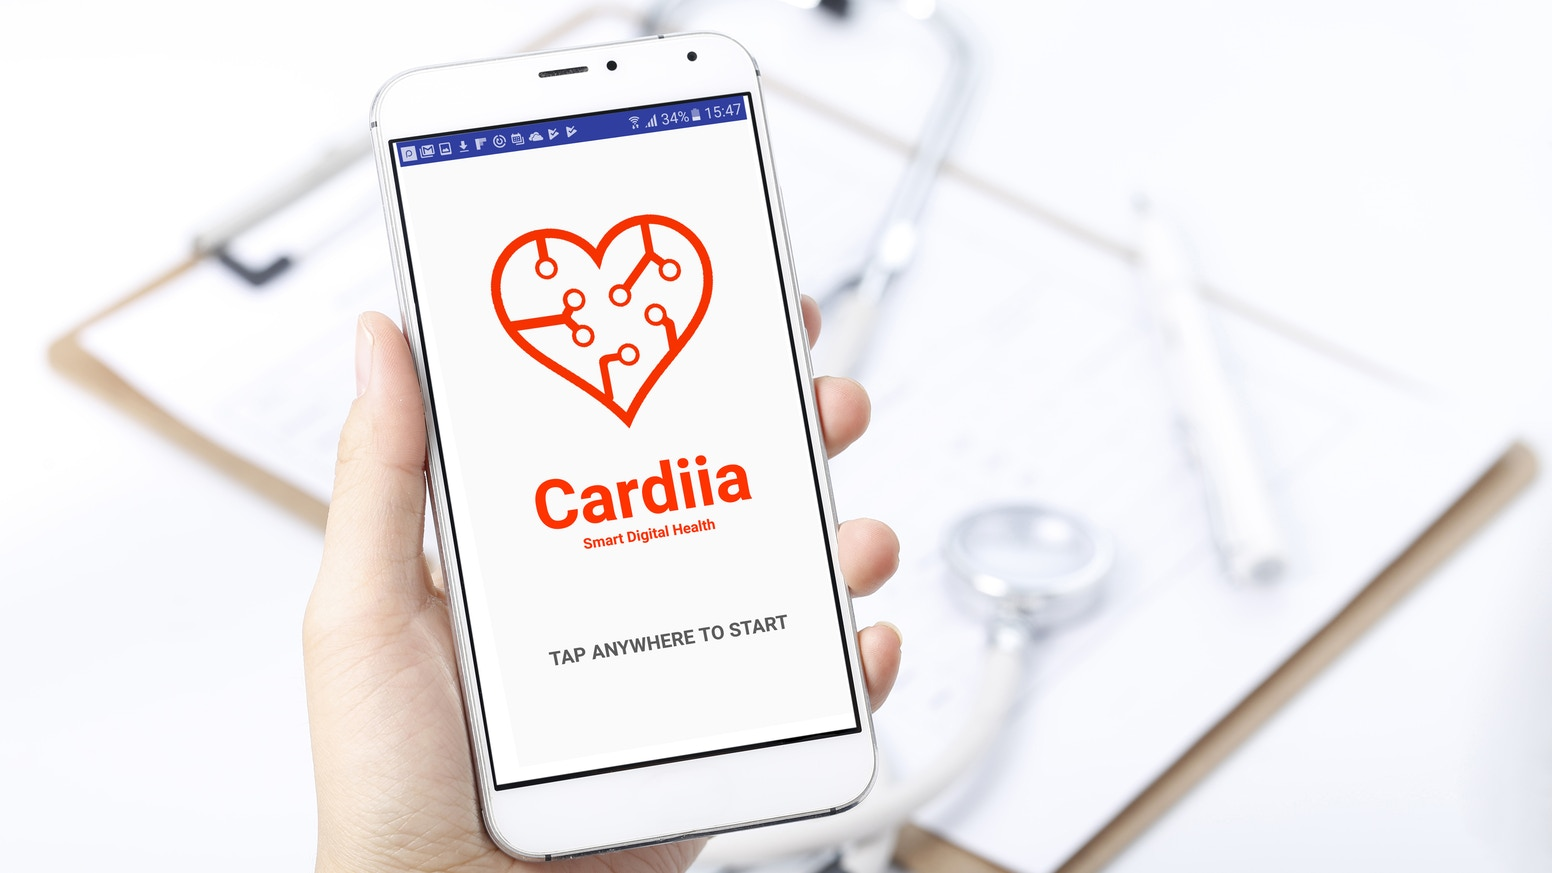 Detecting cardiac diseases with a simple smartphone, without the need for external sensors or devices.